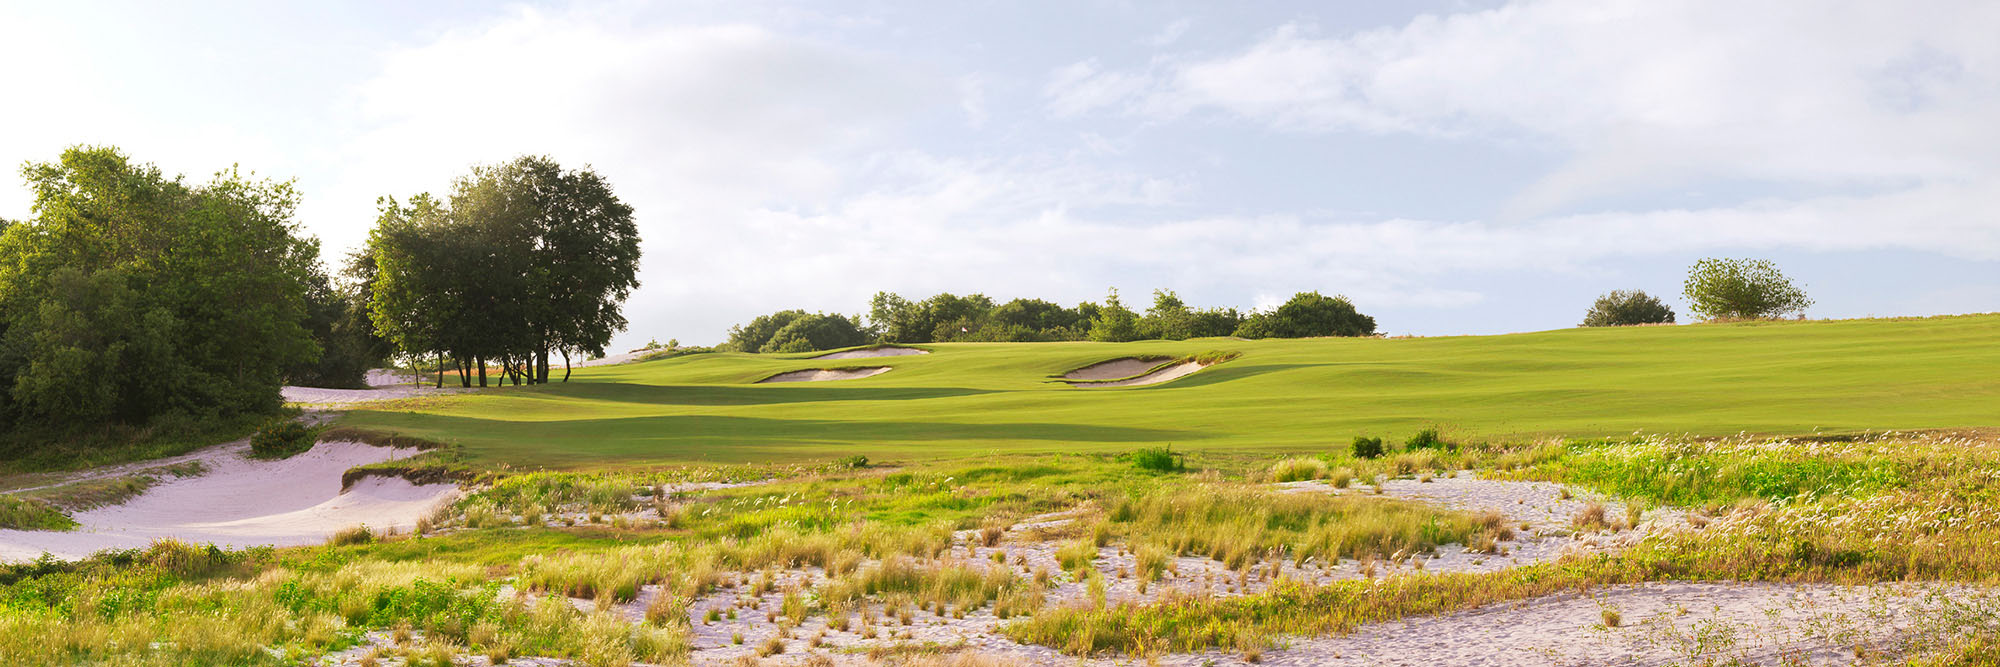 Golf Course Image - Streamsong Red No. 11